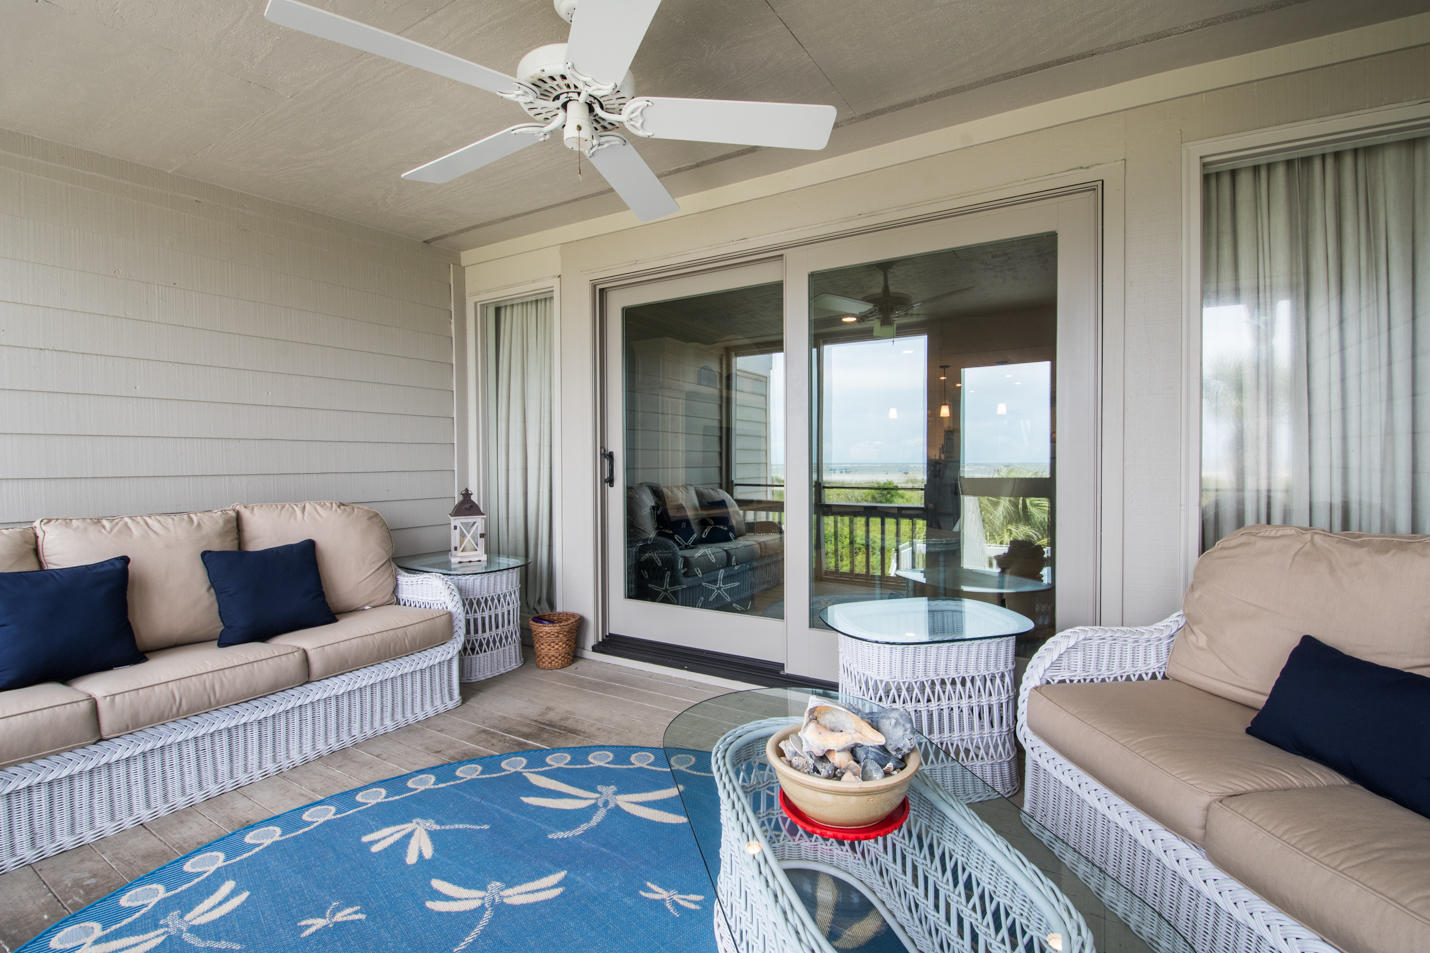 Beach Club Villas Homes For Sale - 66 Beach Club Villas, Isle of Palms, SC - 28